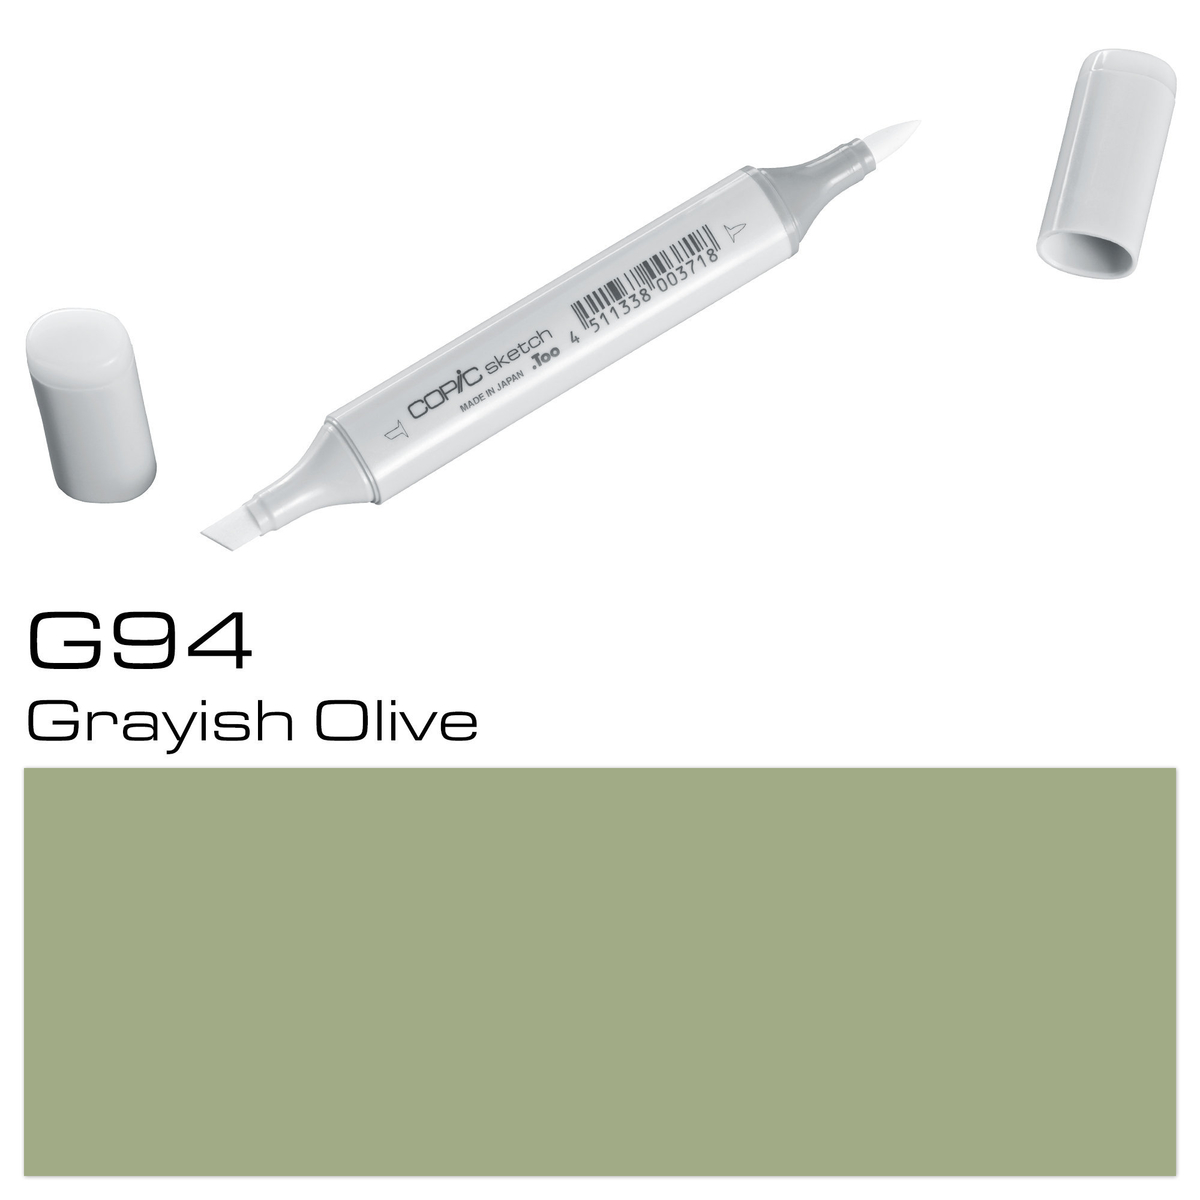 Copic Sketch G 94 grayish oliv